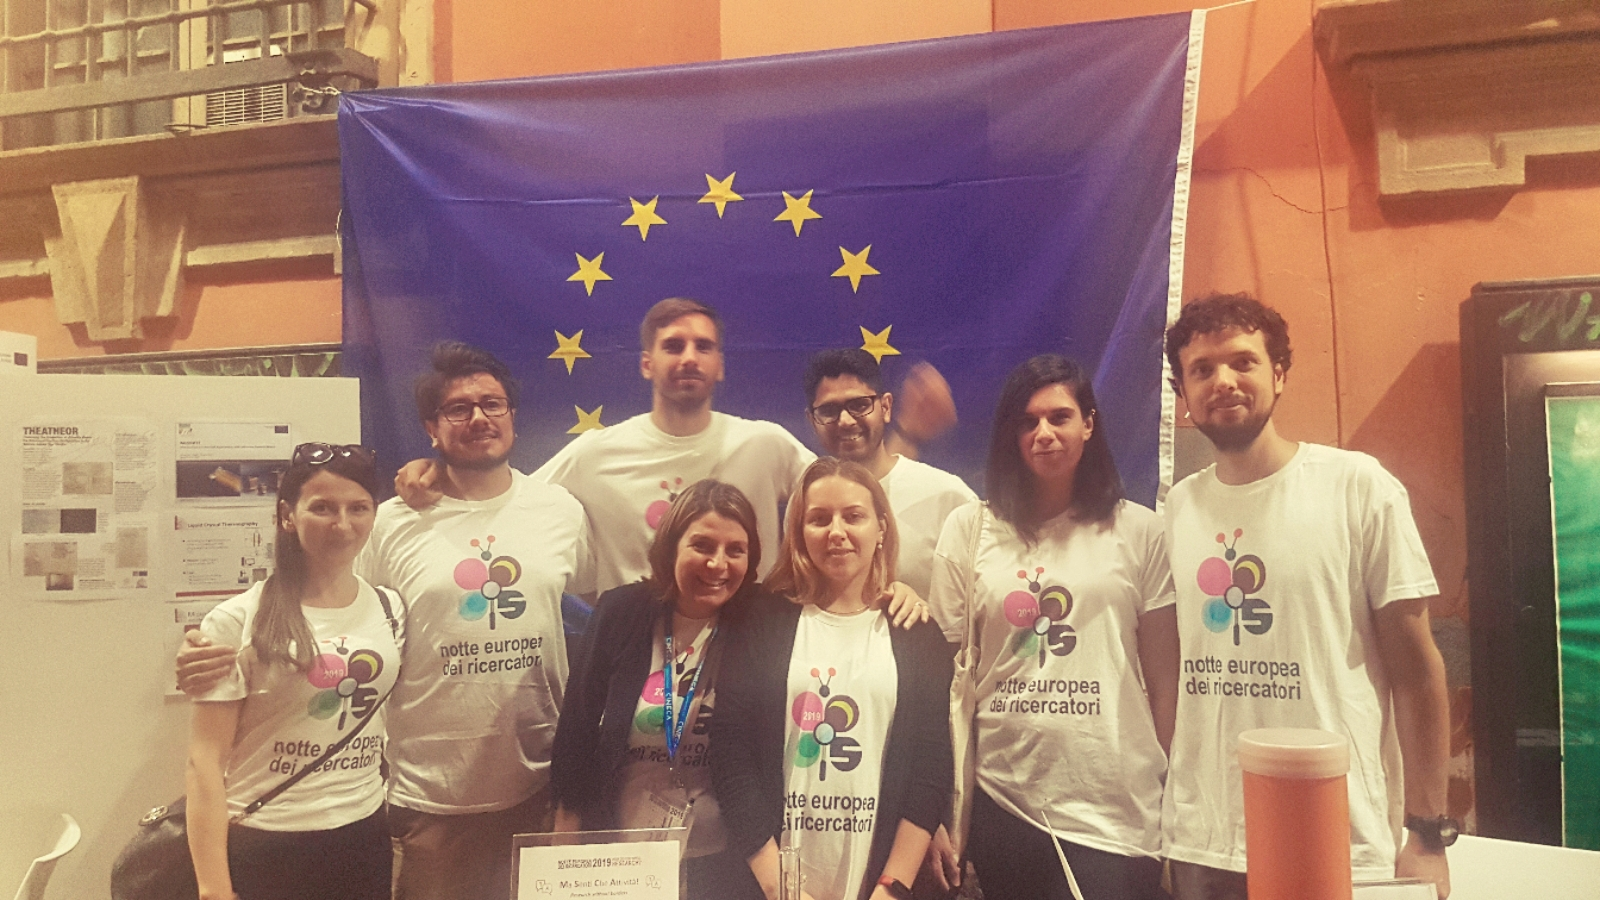 Marie Sklodowska-Curie Actions fellows participating in the European Researchers' Night 2019